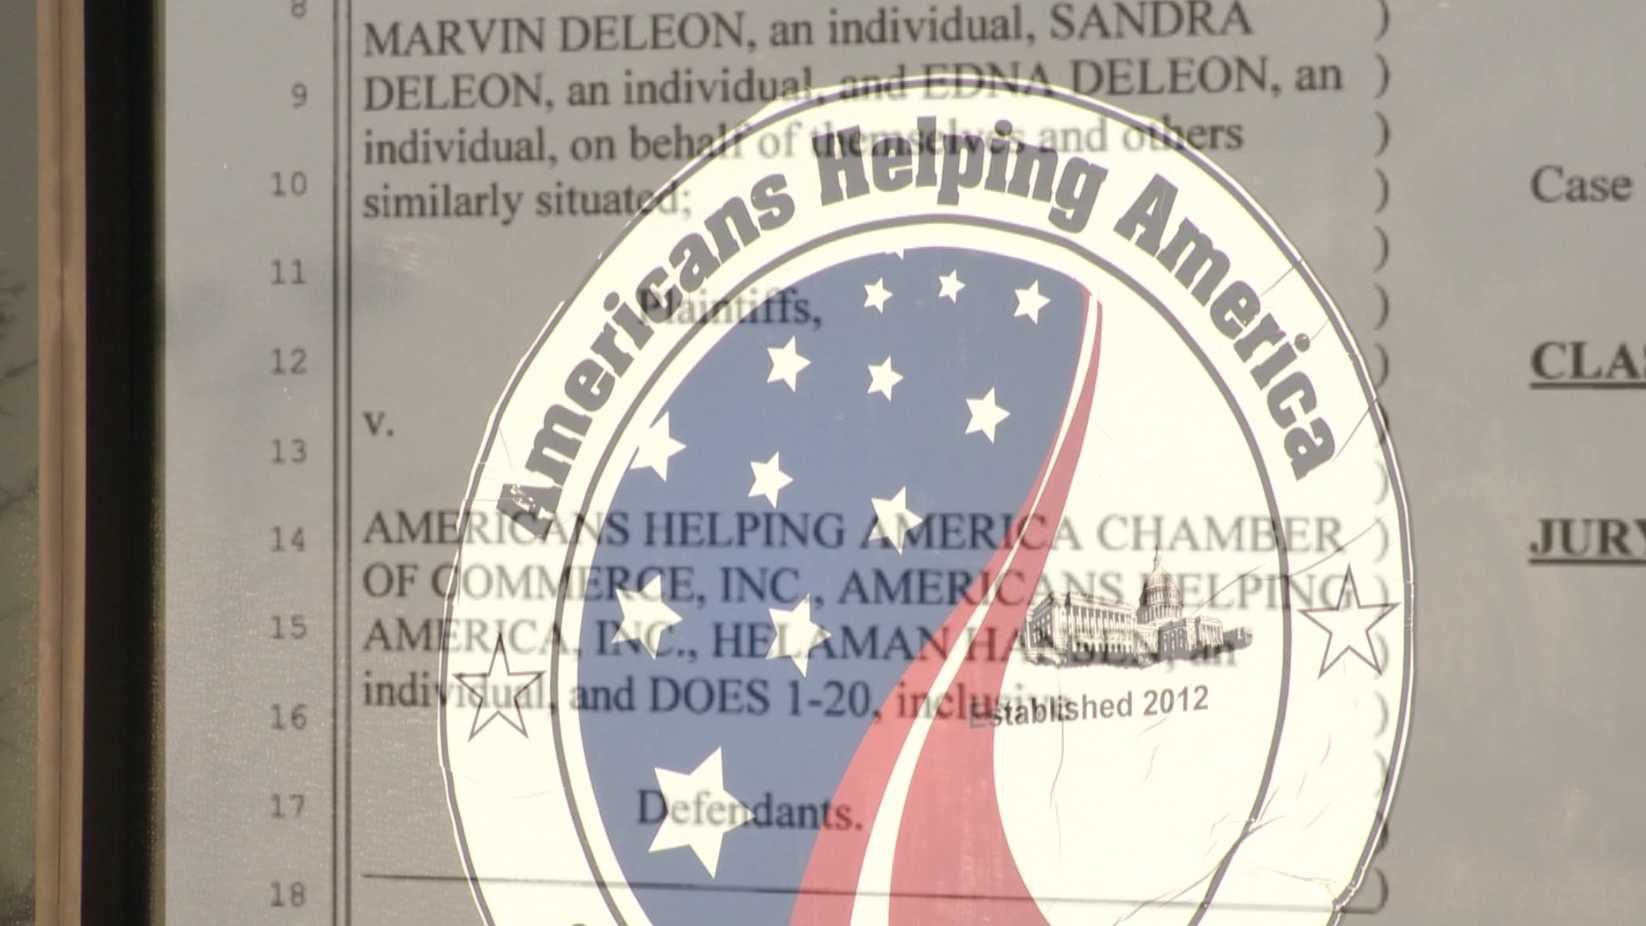 Sacramento nonprofit Americans Helping America Chamber of Commerce Agency is under investigation by the FBI.